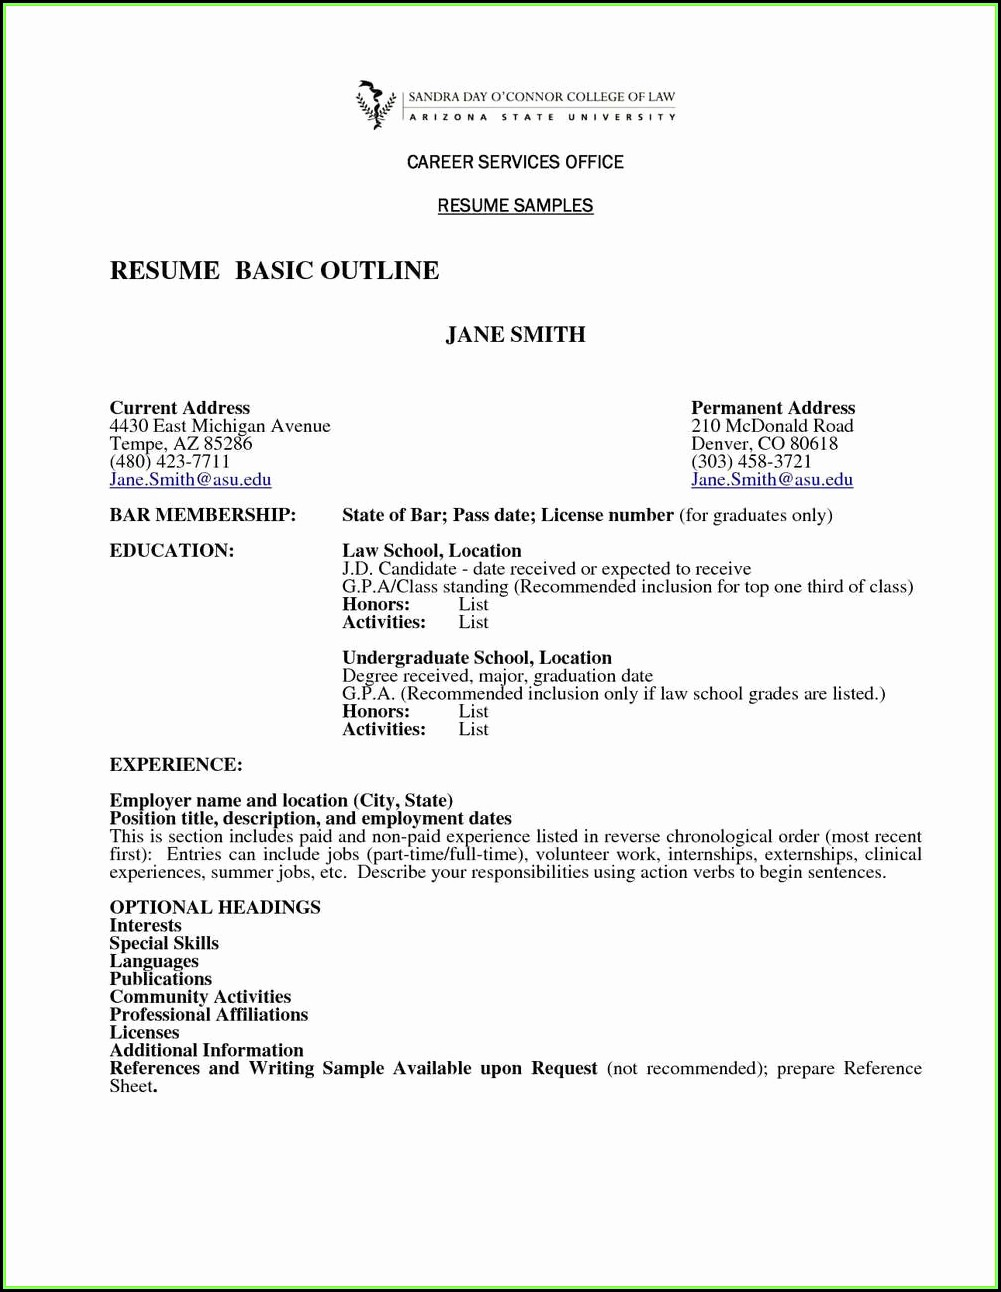 Michigan Talent Bank Resume Builder